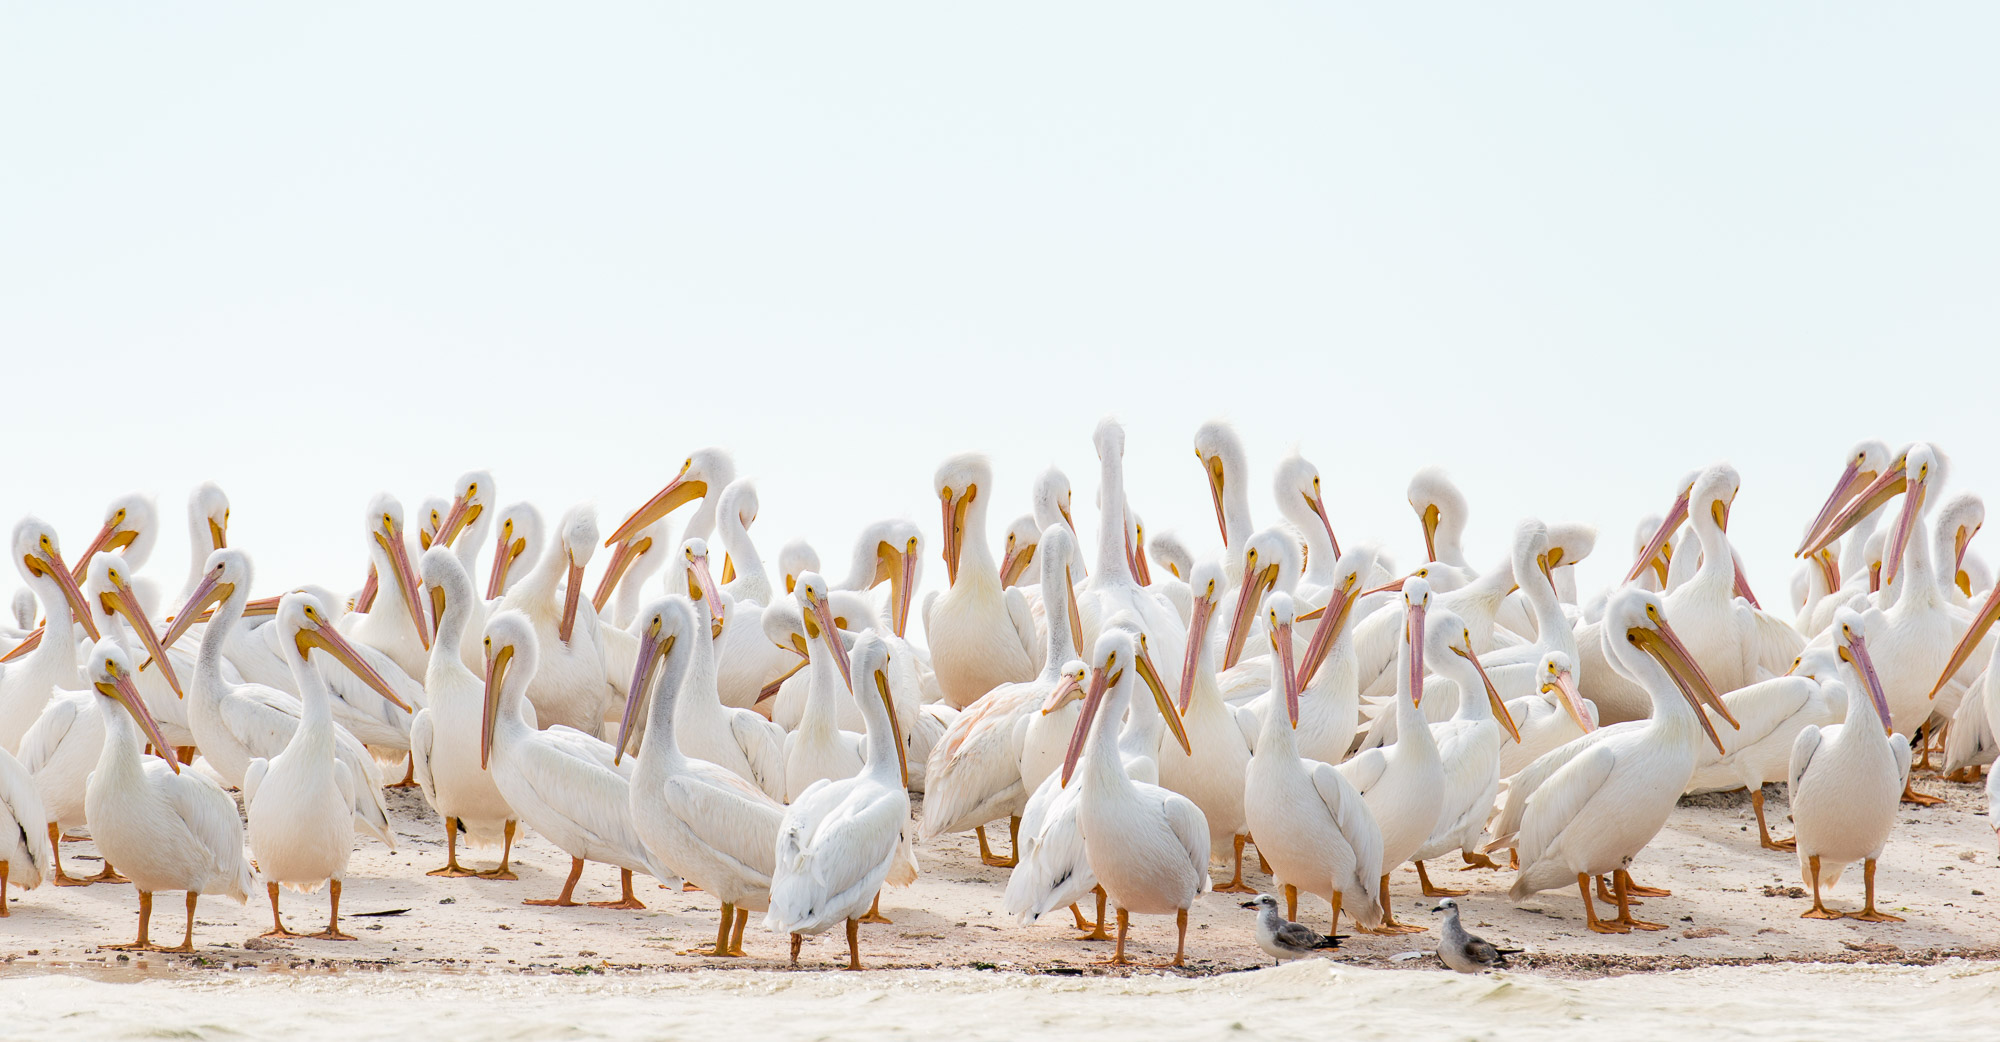 American White Pelicans - Indian Key, Everglades National Park, Florida